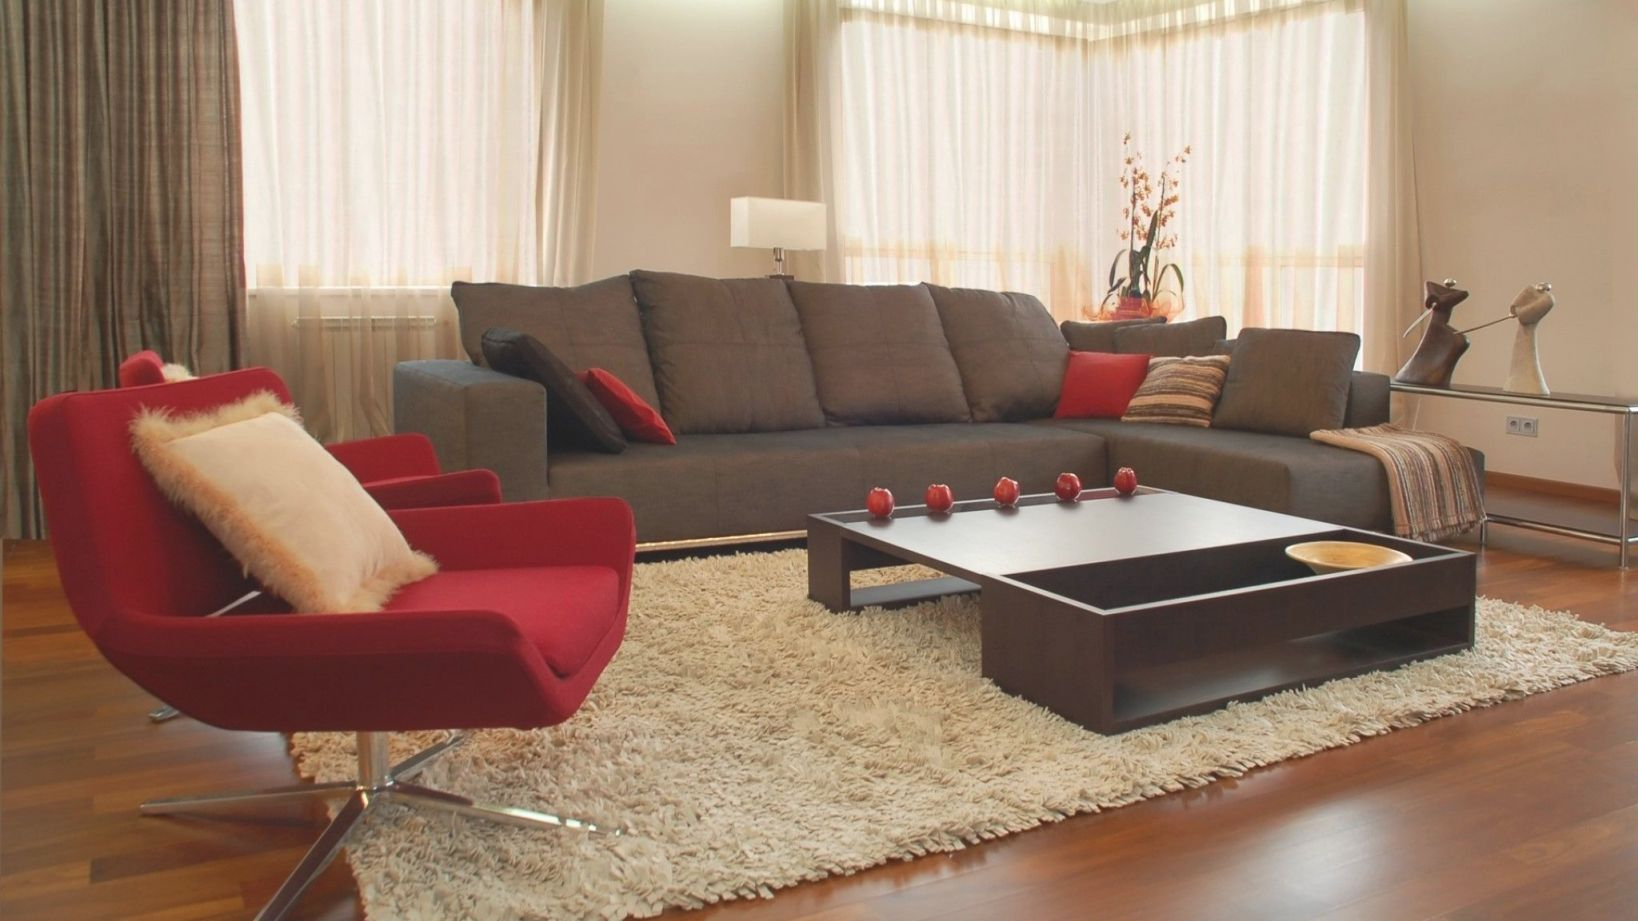 Cream Brown And Red Living Room Ideas Full Size | Brown with regard to Brown And Red Living Room